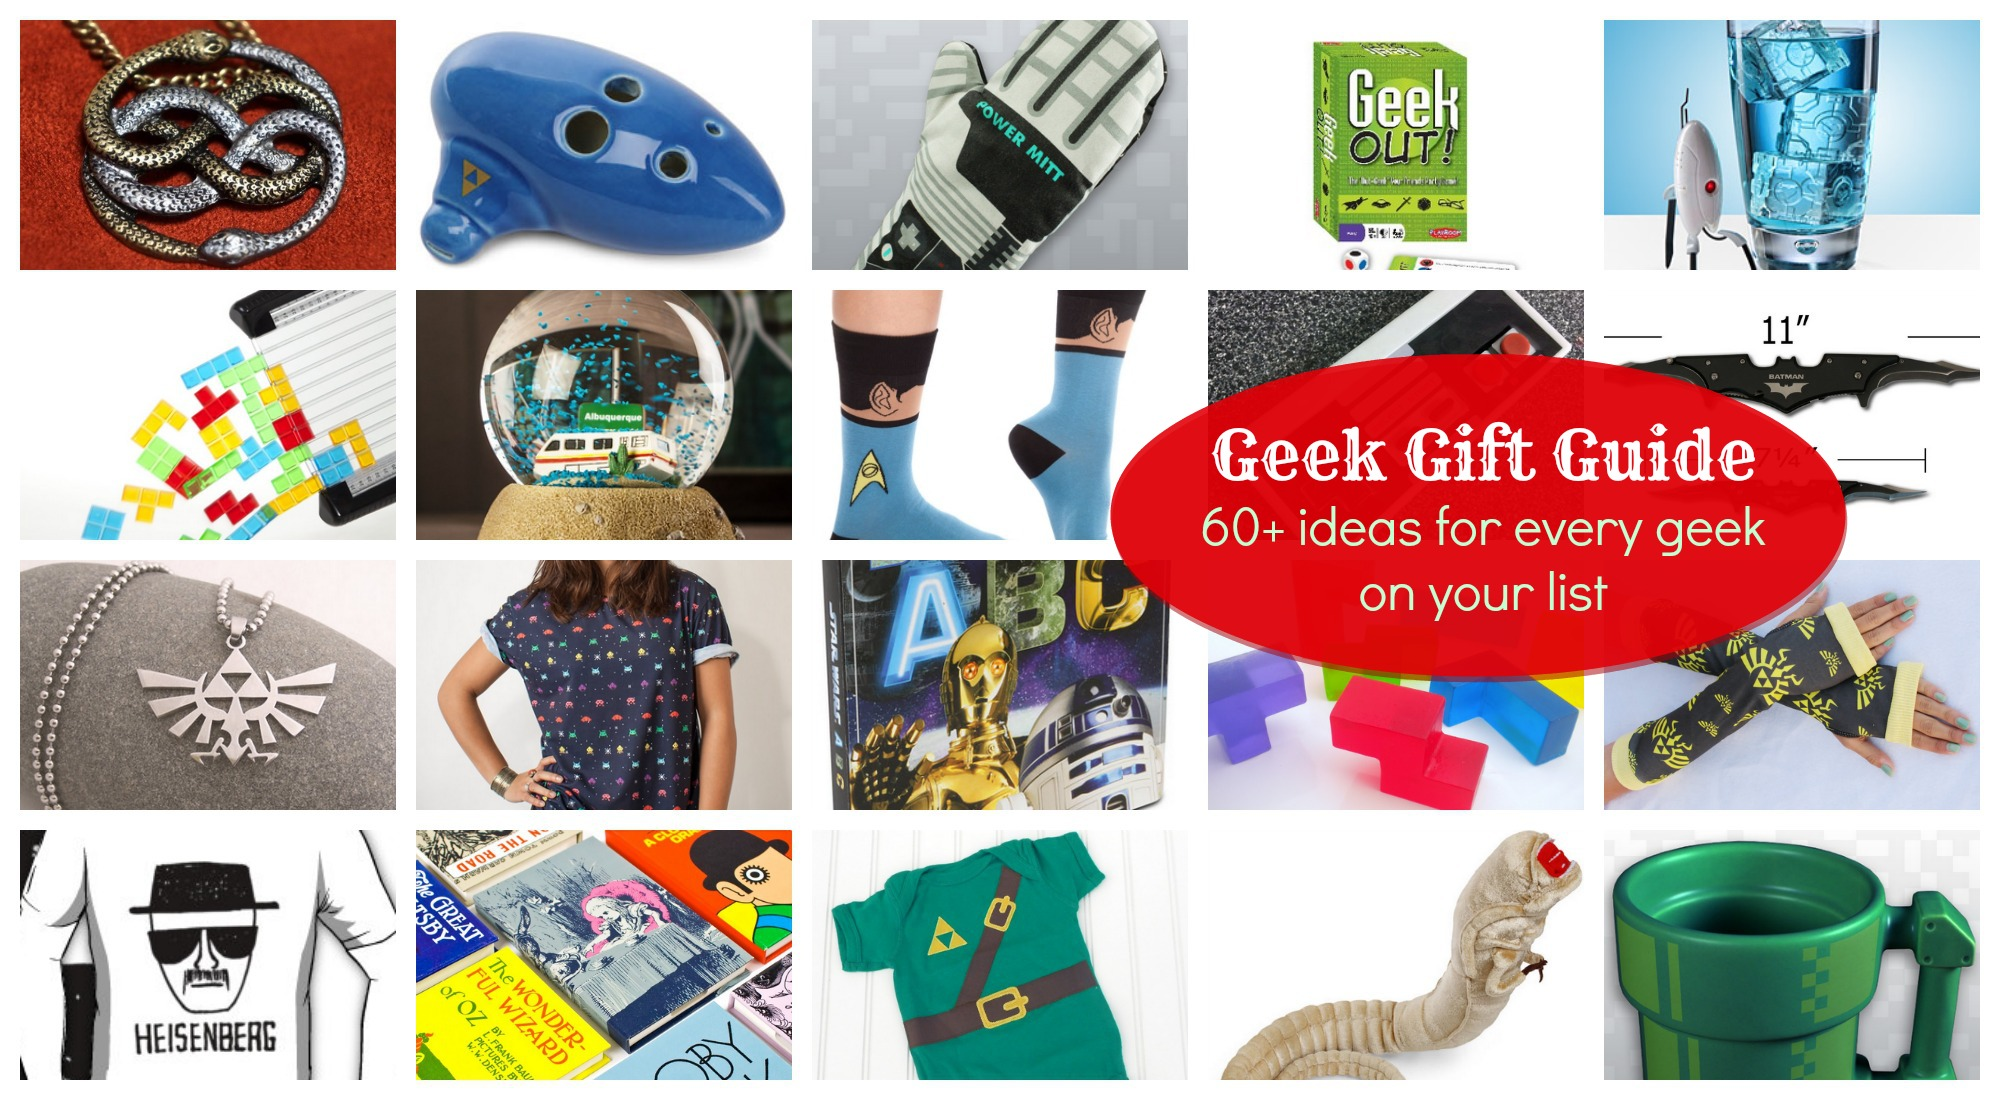 Geek Gifts: Doctor Who, Star Wars, Star Trek, Zelda, and more